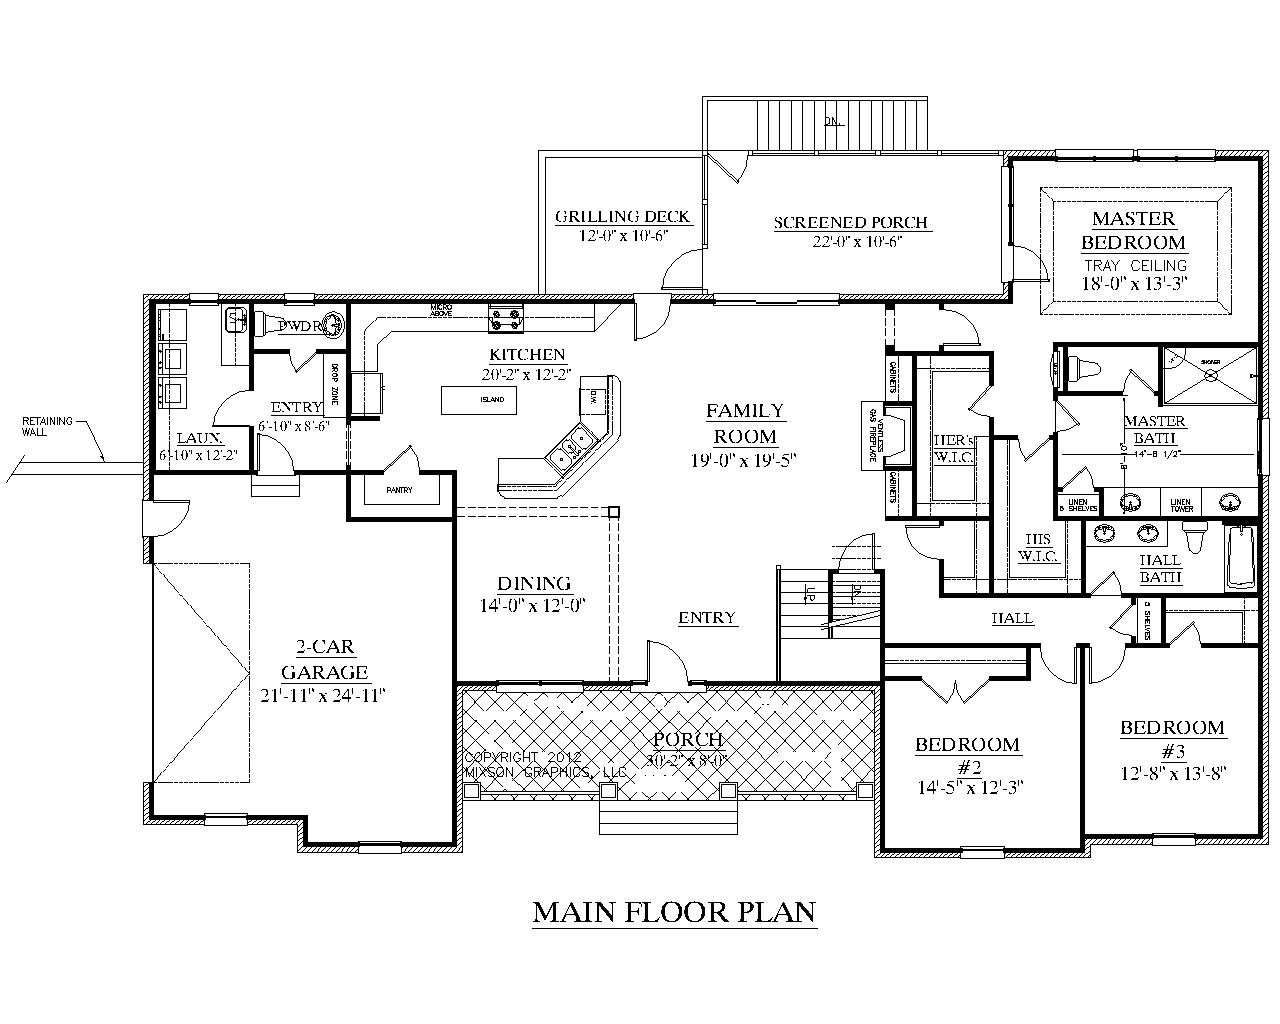 Beautiful 4 Bedroom House Plans likewise Home Addition Plans as well 16 X 80 Mobile Home additionally 140d42113552bd38 Double Wide Log Mobile Home Single Story Log Home Floor Plans besides 475340935640060795. on single wide mobile home porches